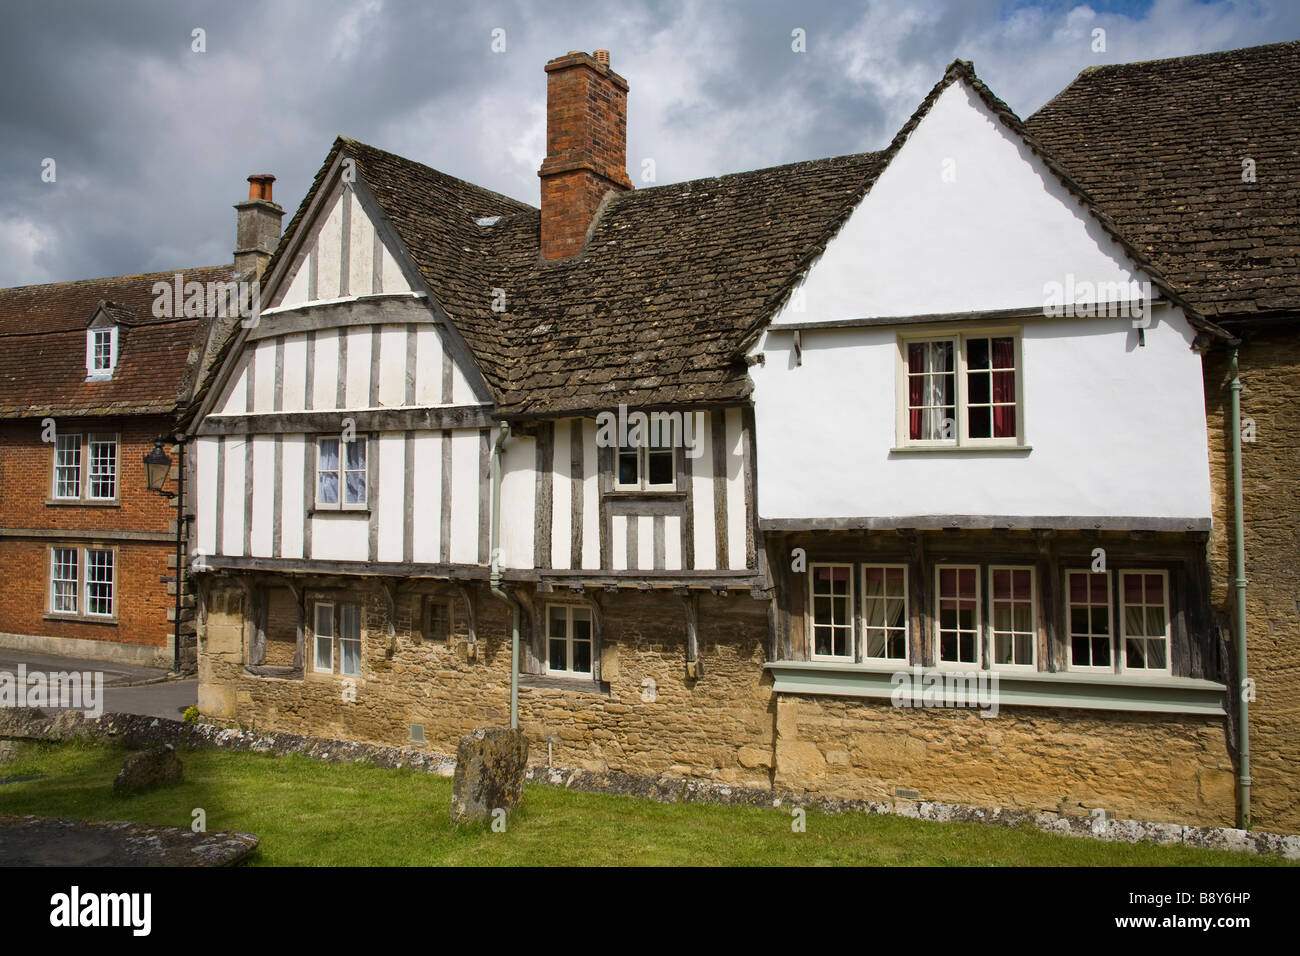 Tudor style houses in a row, Lacock, Wiltshire, England - Stock Image